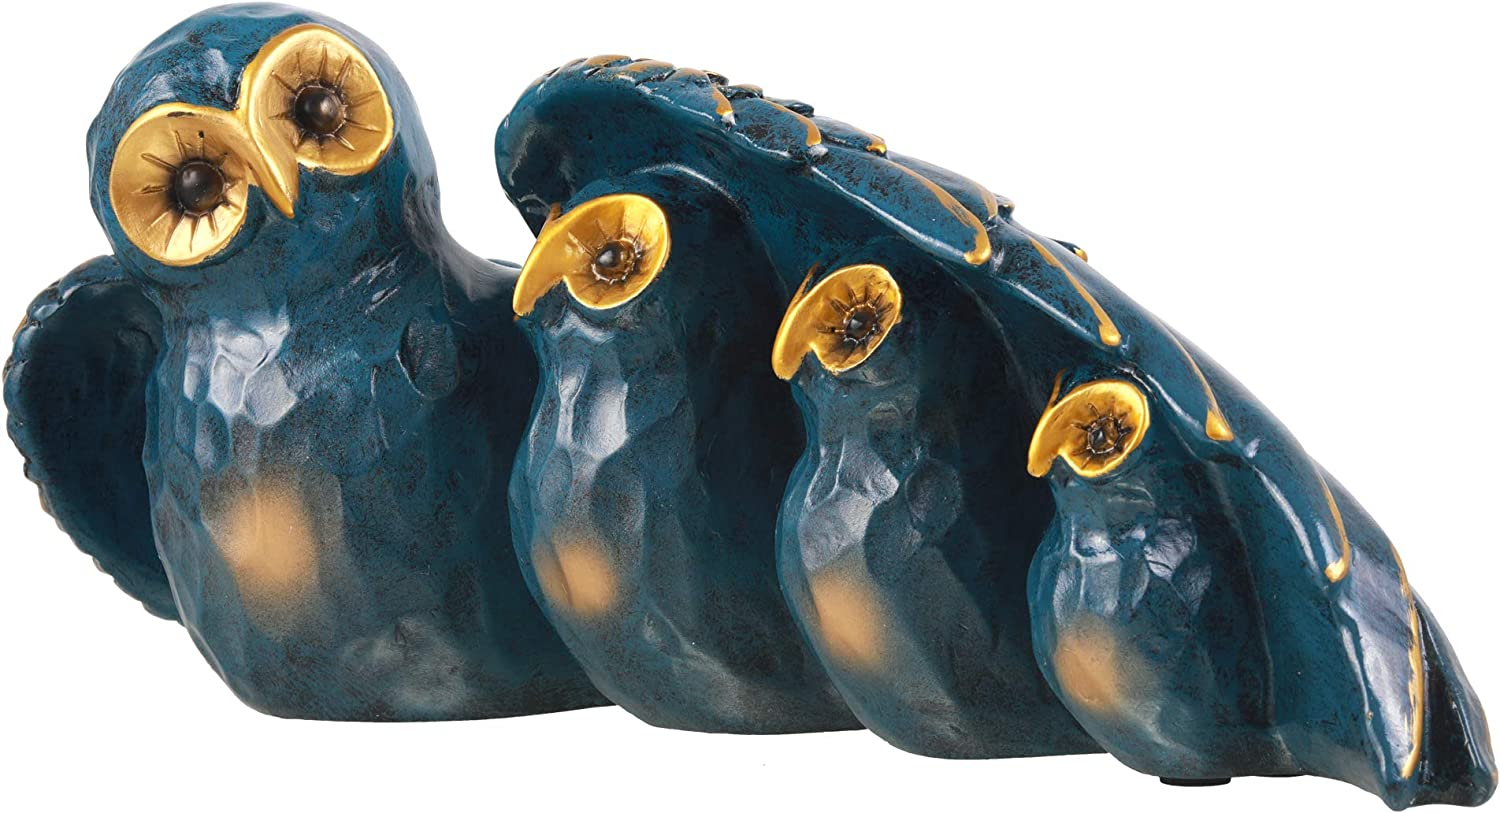 Mixiflor Owl Statue Decor - Teal & Gold Owlets Figurine - Decorative Piece for Bedroom, Living Room - Mini Sculpture for Bookshelf, Table or TV Stand Display - Animal Collectible & Home Decoration